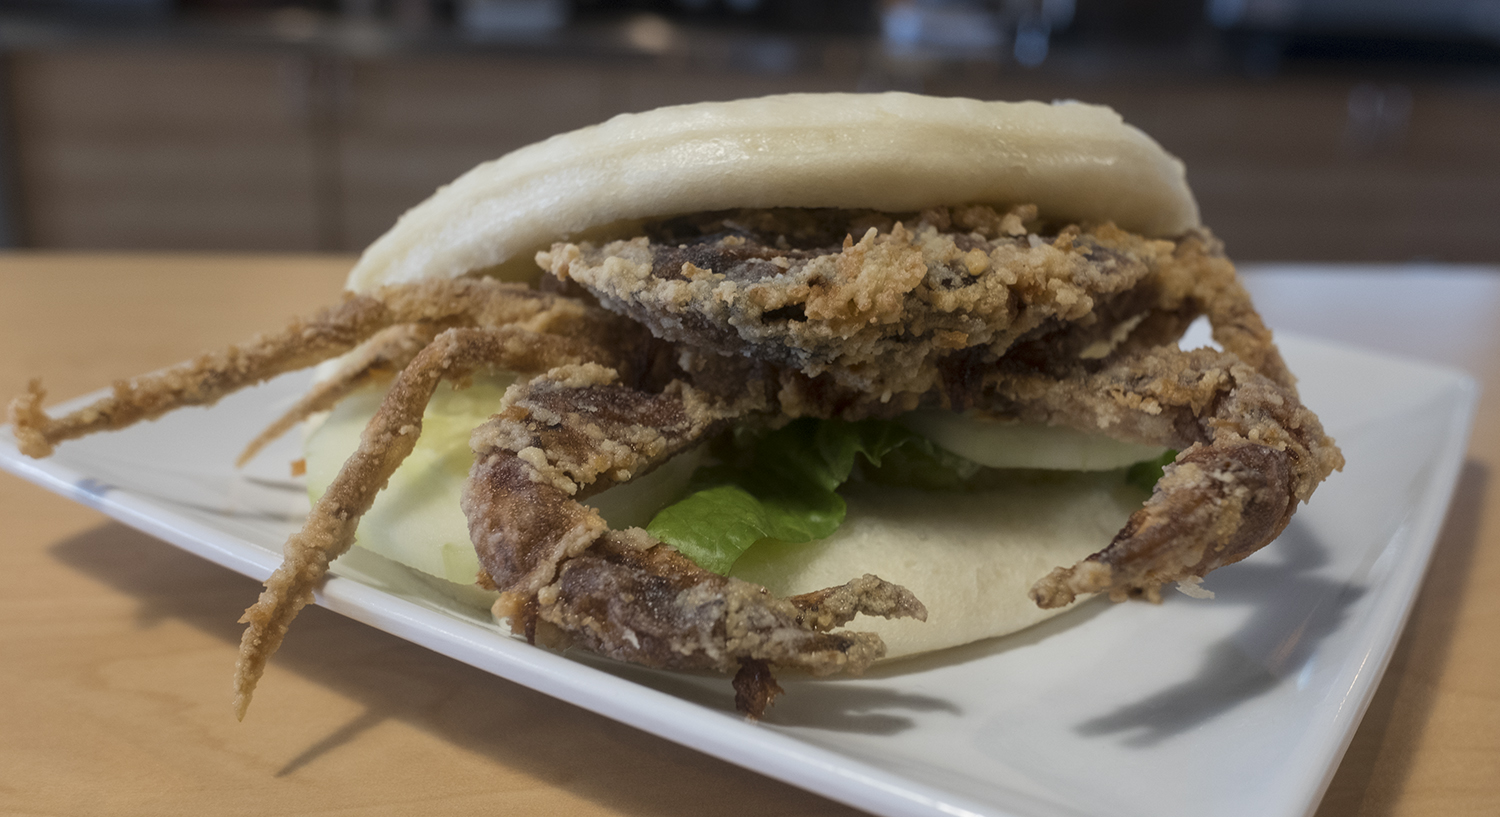 Soft shell crab, tempura fried and served in a bao